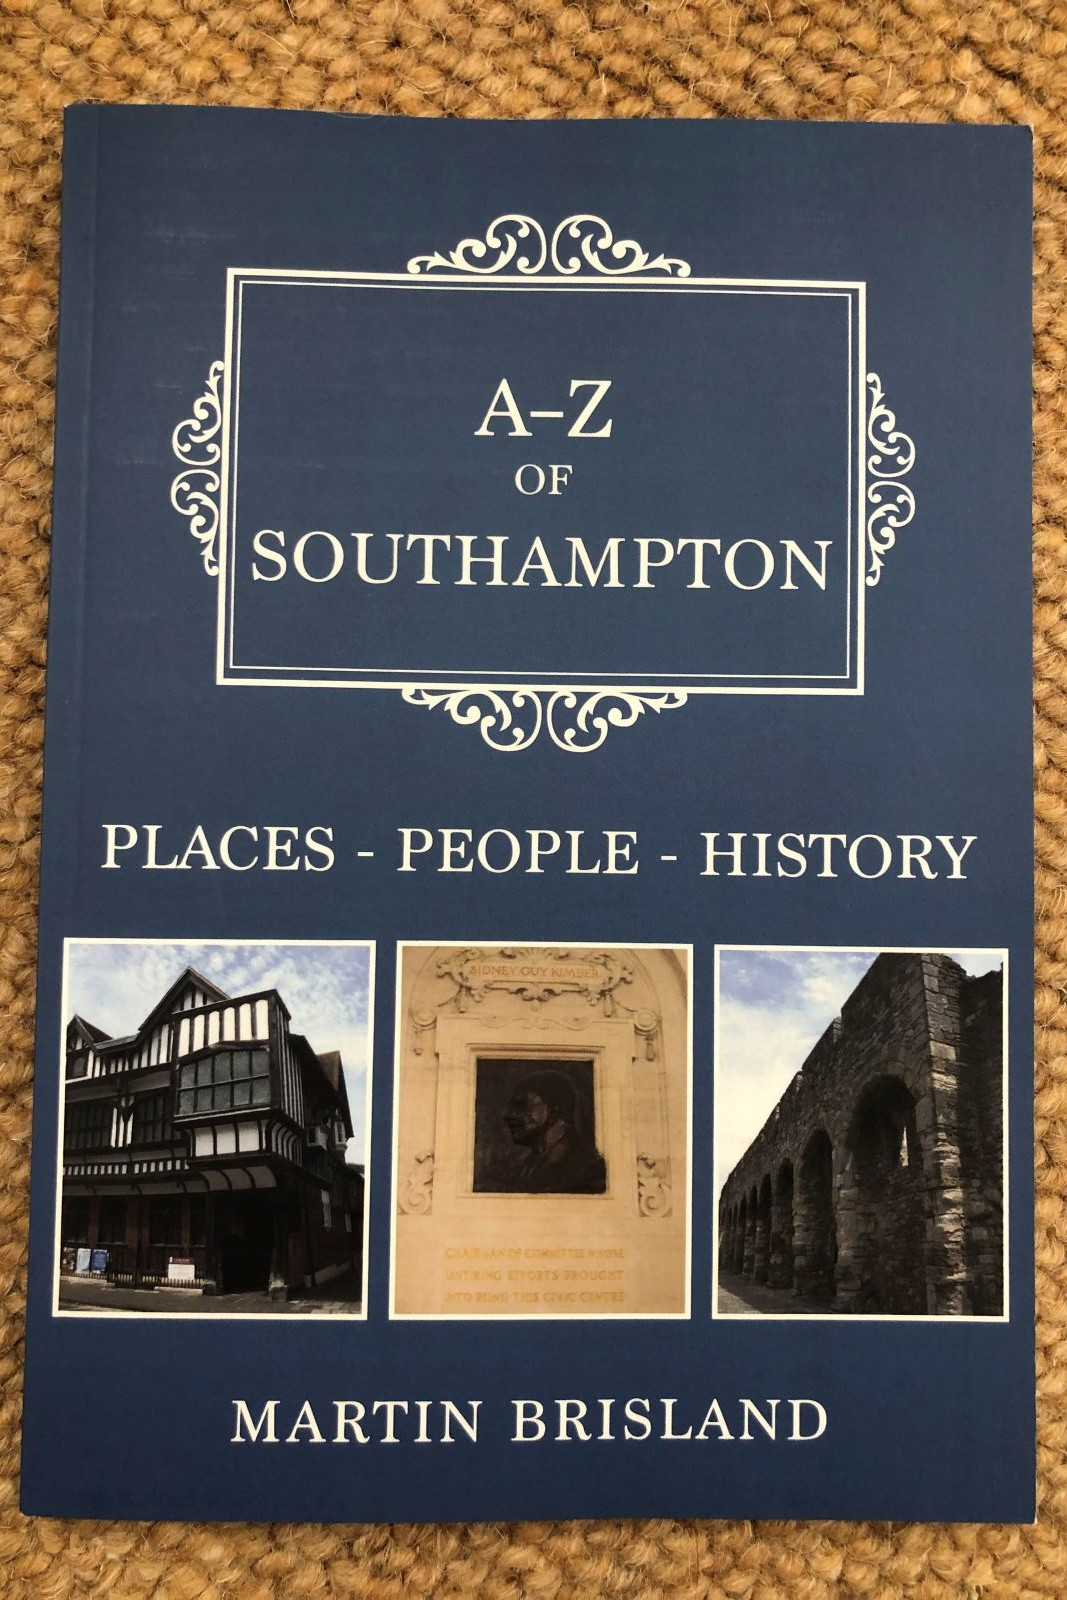 Book review: A-Z of Southampton: People-Places-History, Martin Brisland